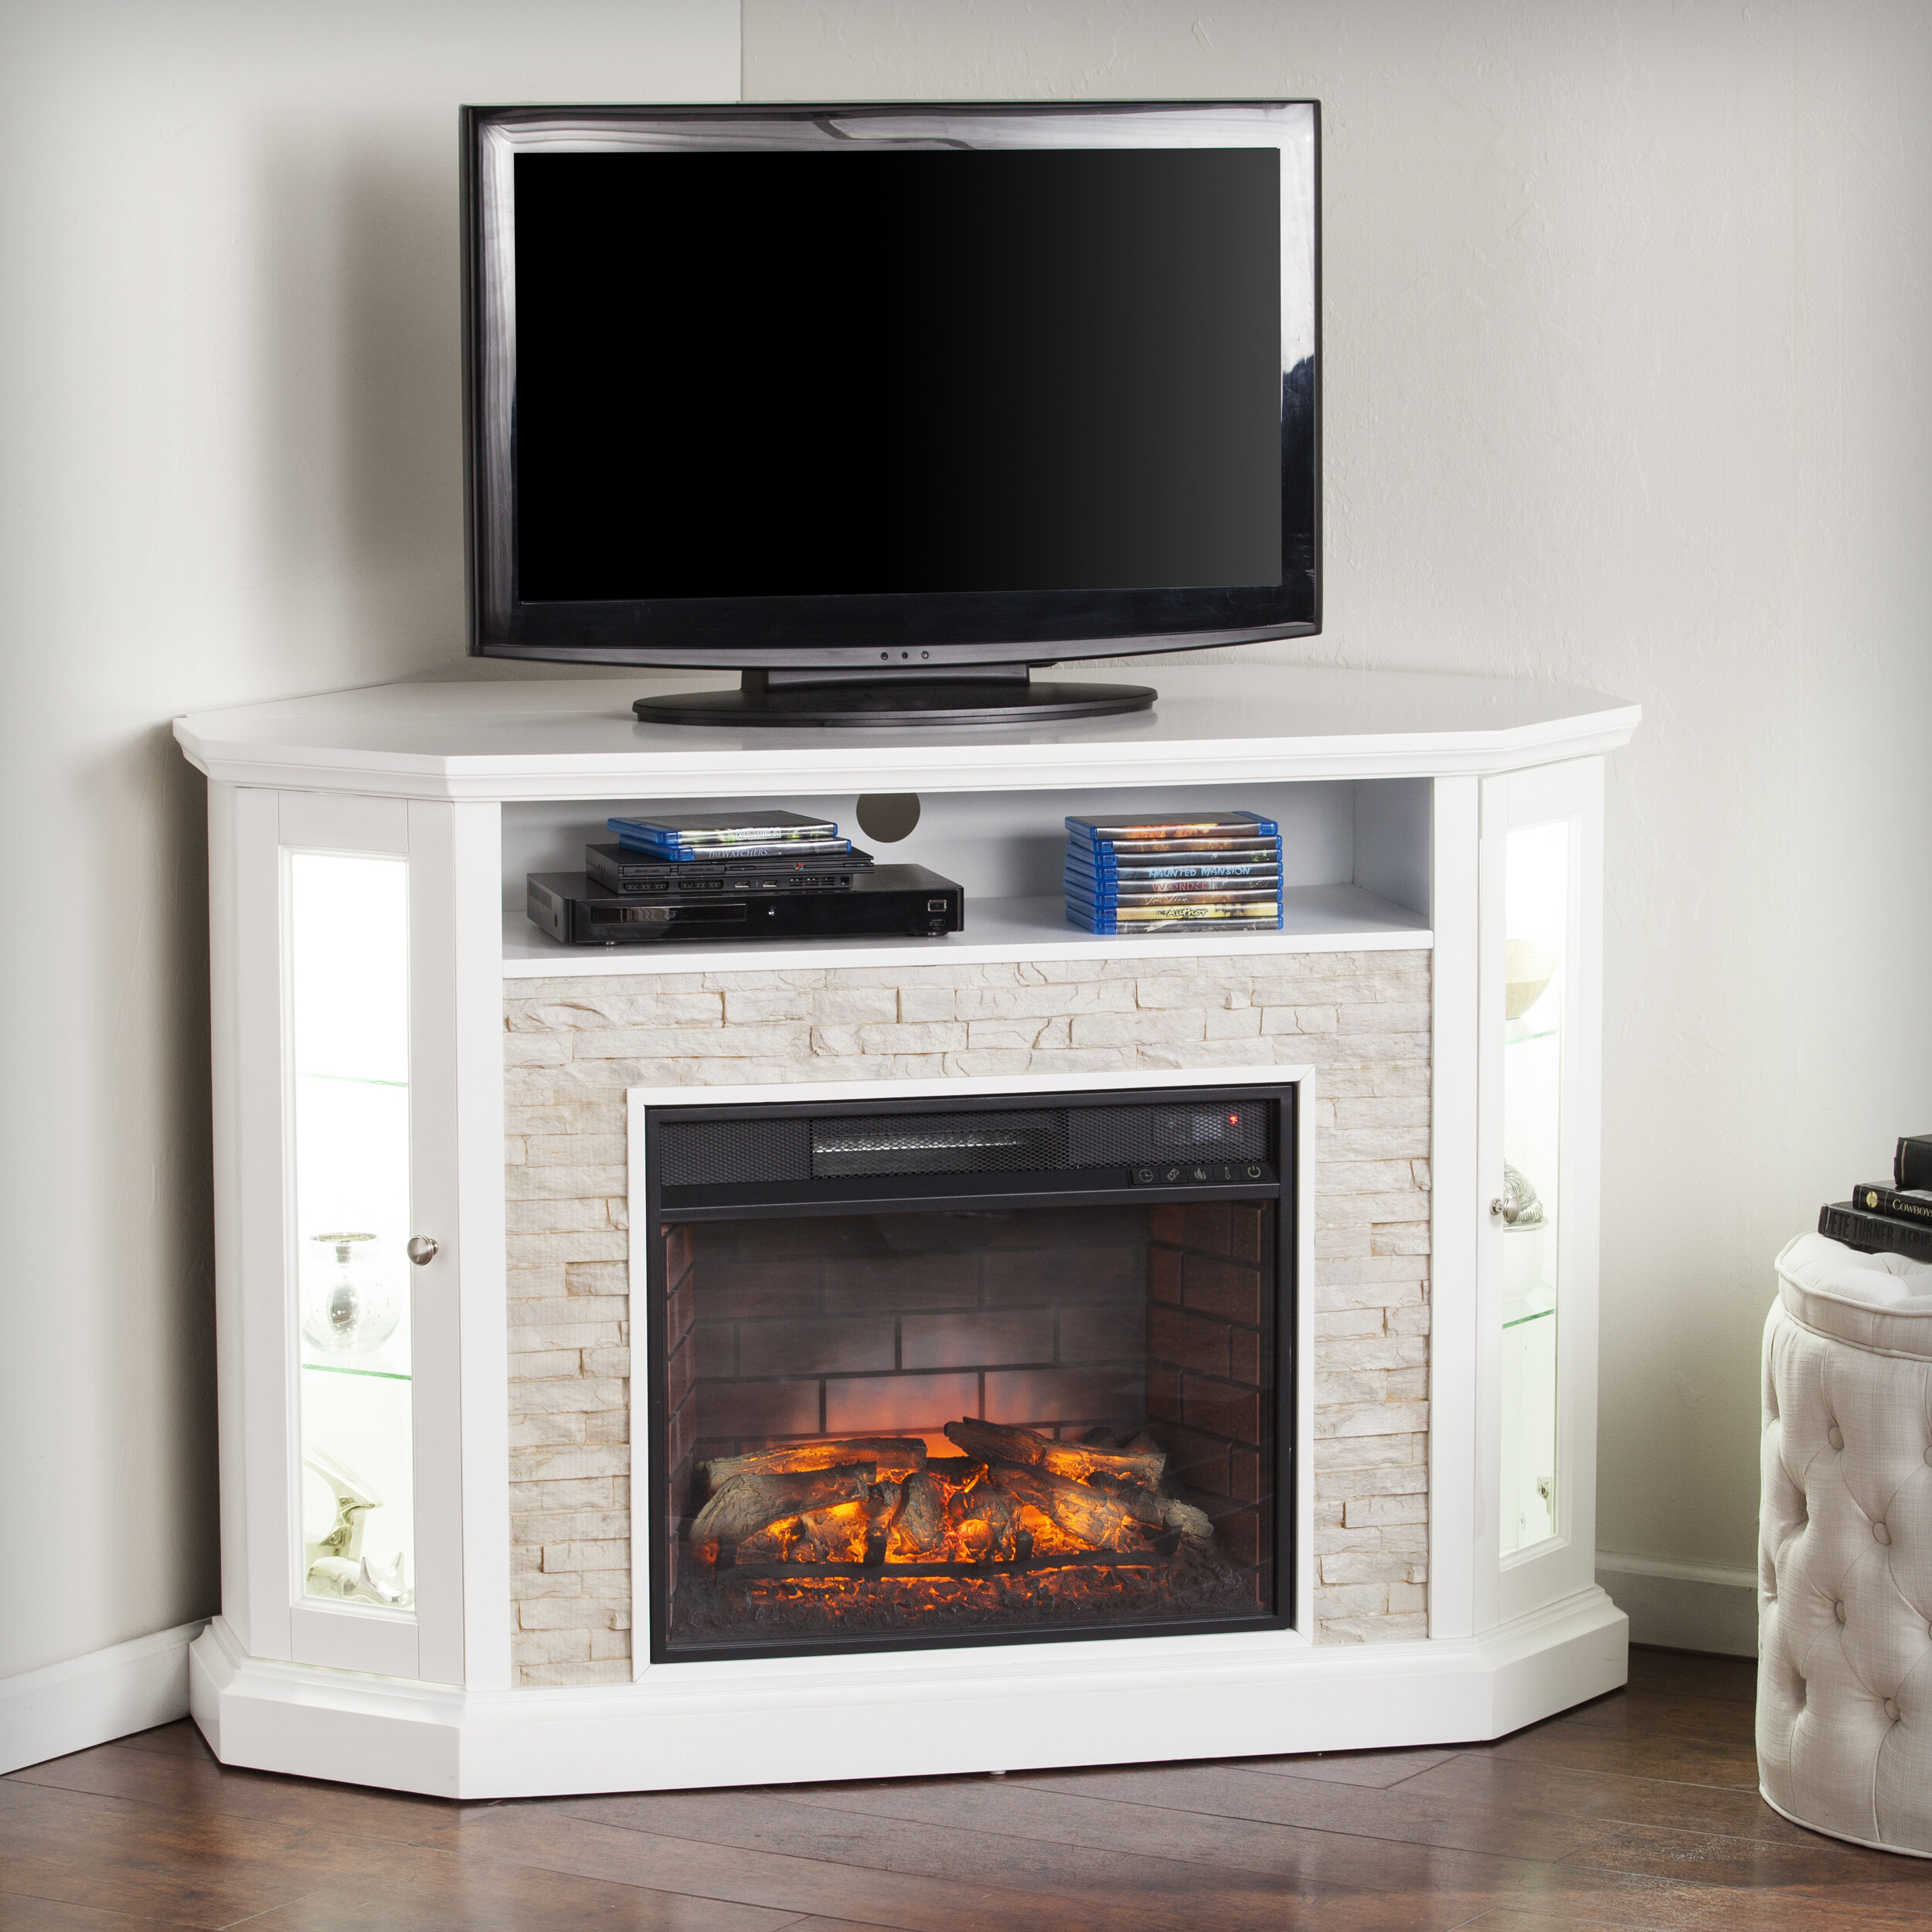 Alcott Hill Montpelier Tv Stand For Tvs Up To 50 With Fireplace